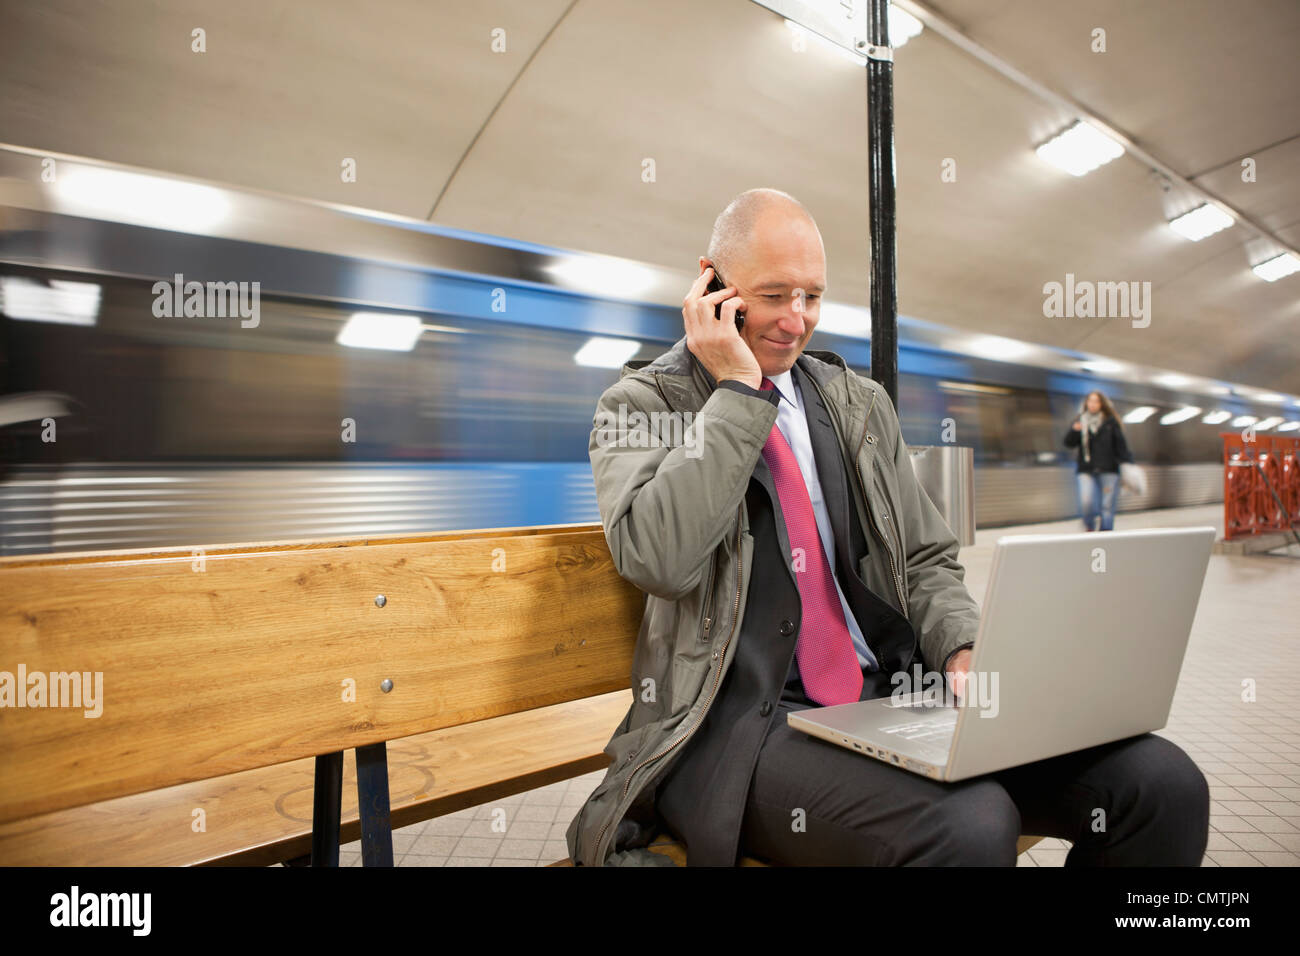 Man with laptop and cell phone on platform - Stock Image